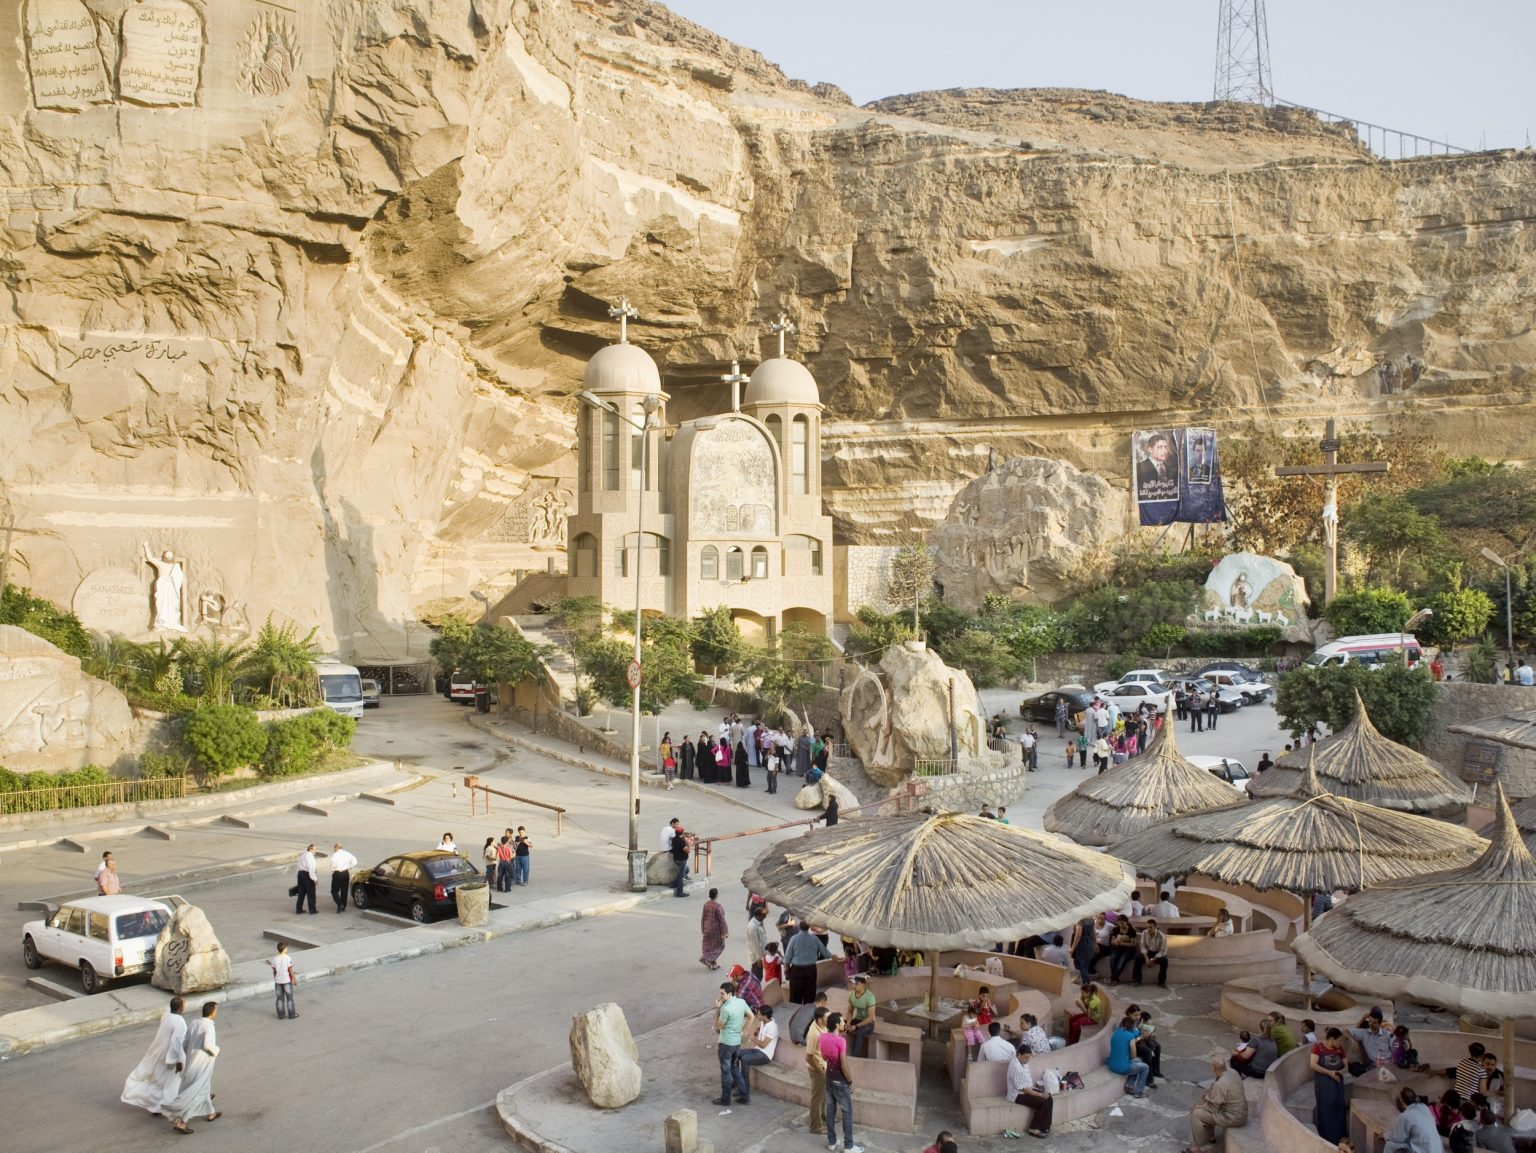 View of the Cave Church in Garbage City. This church is the largest church in the Middle East.